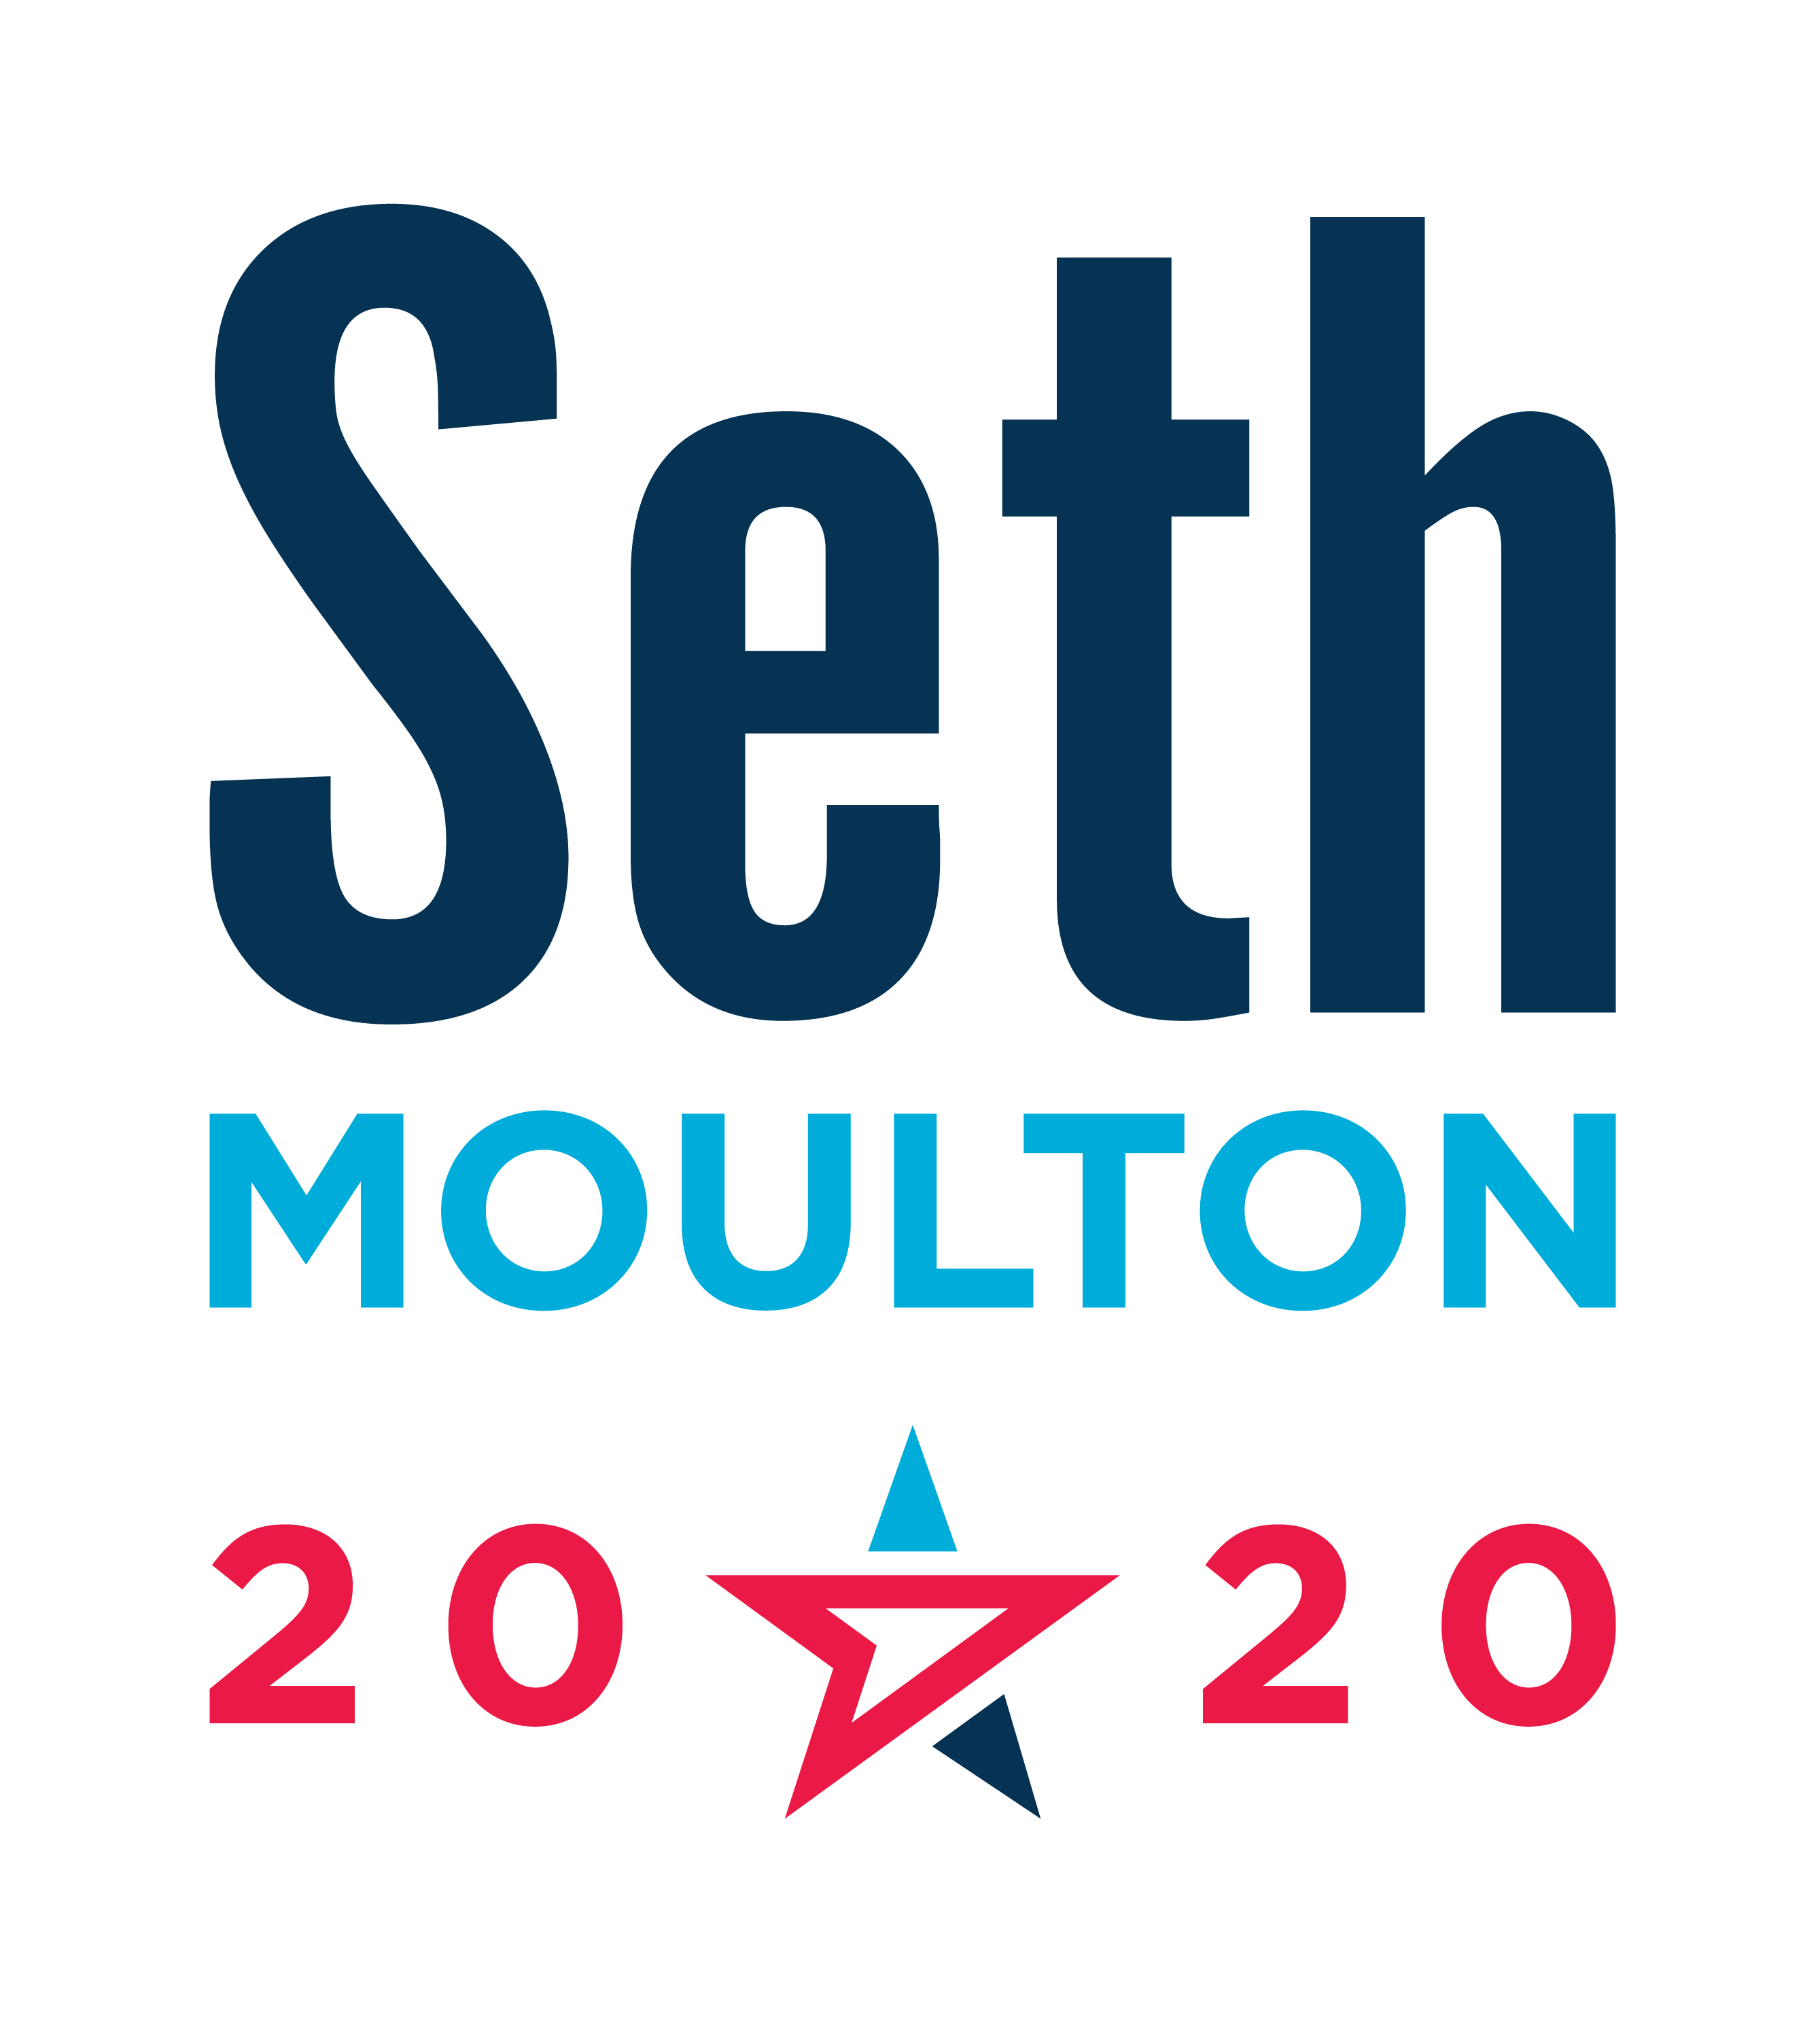 Seth Moulton for America Inc. logo